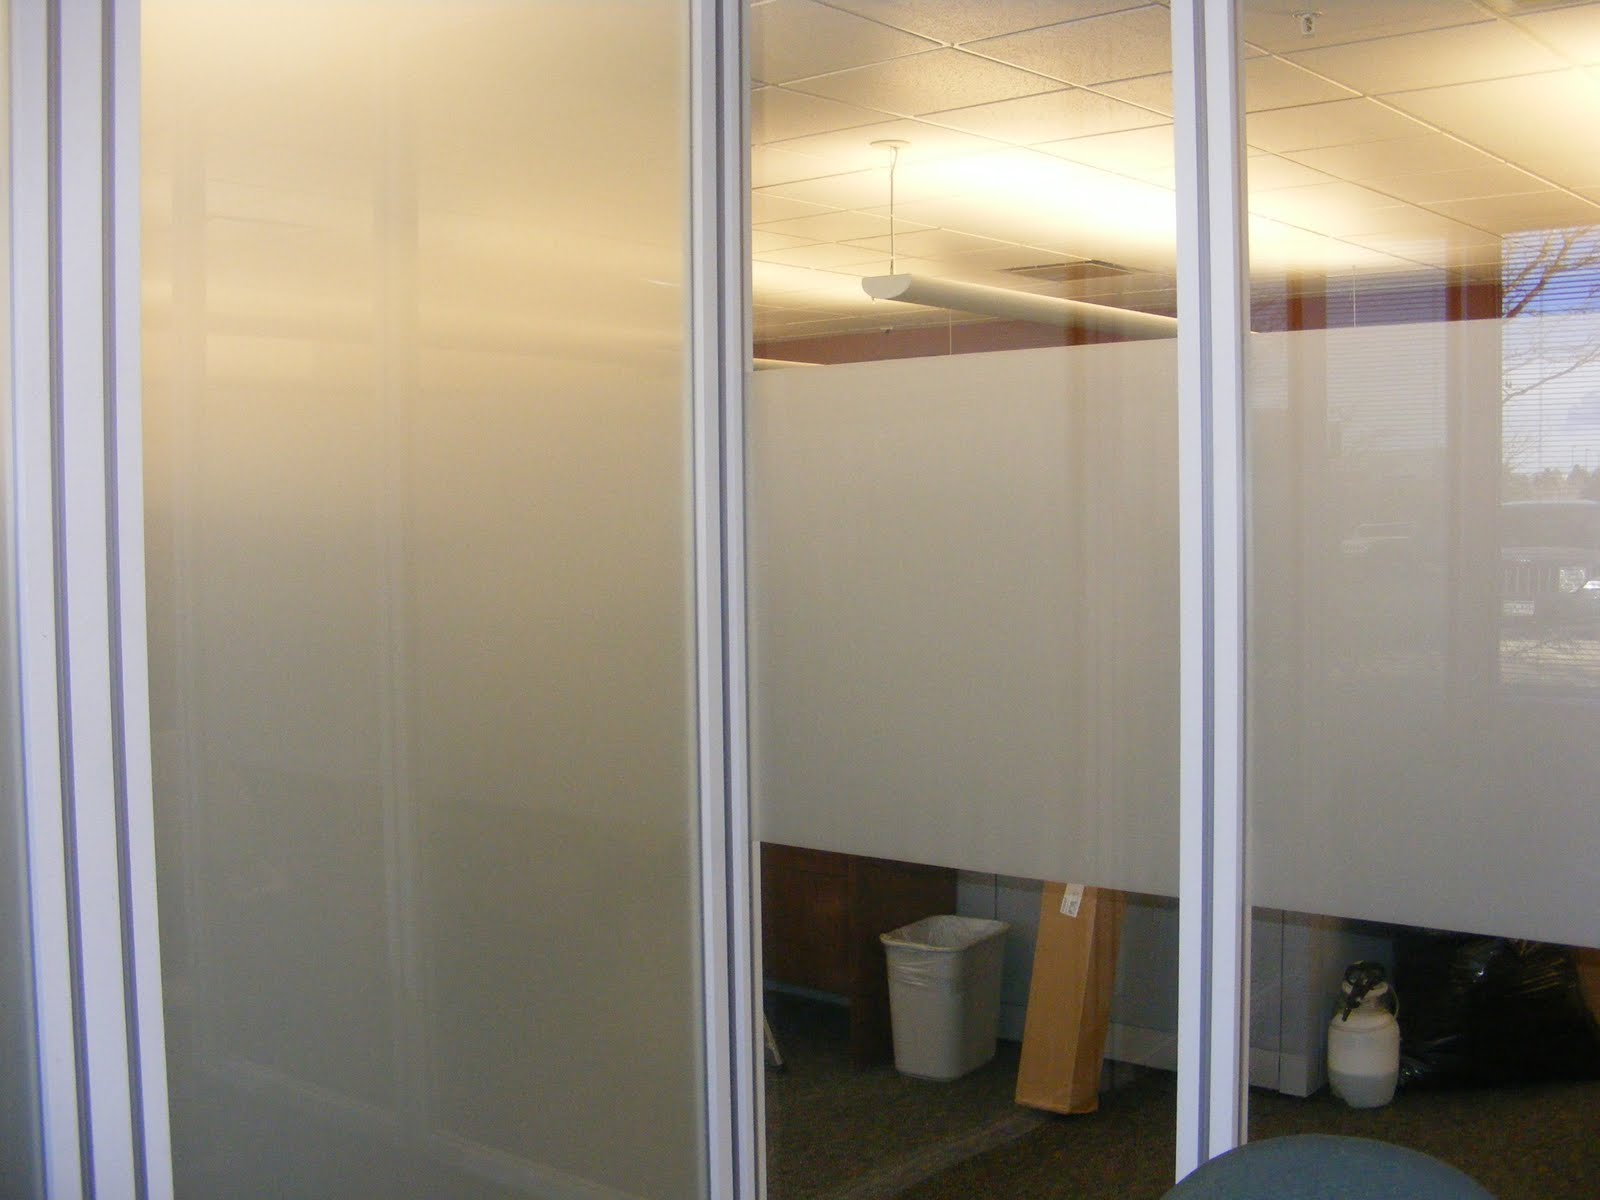 Clear View Window Films Frosted Window Film Provides